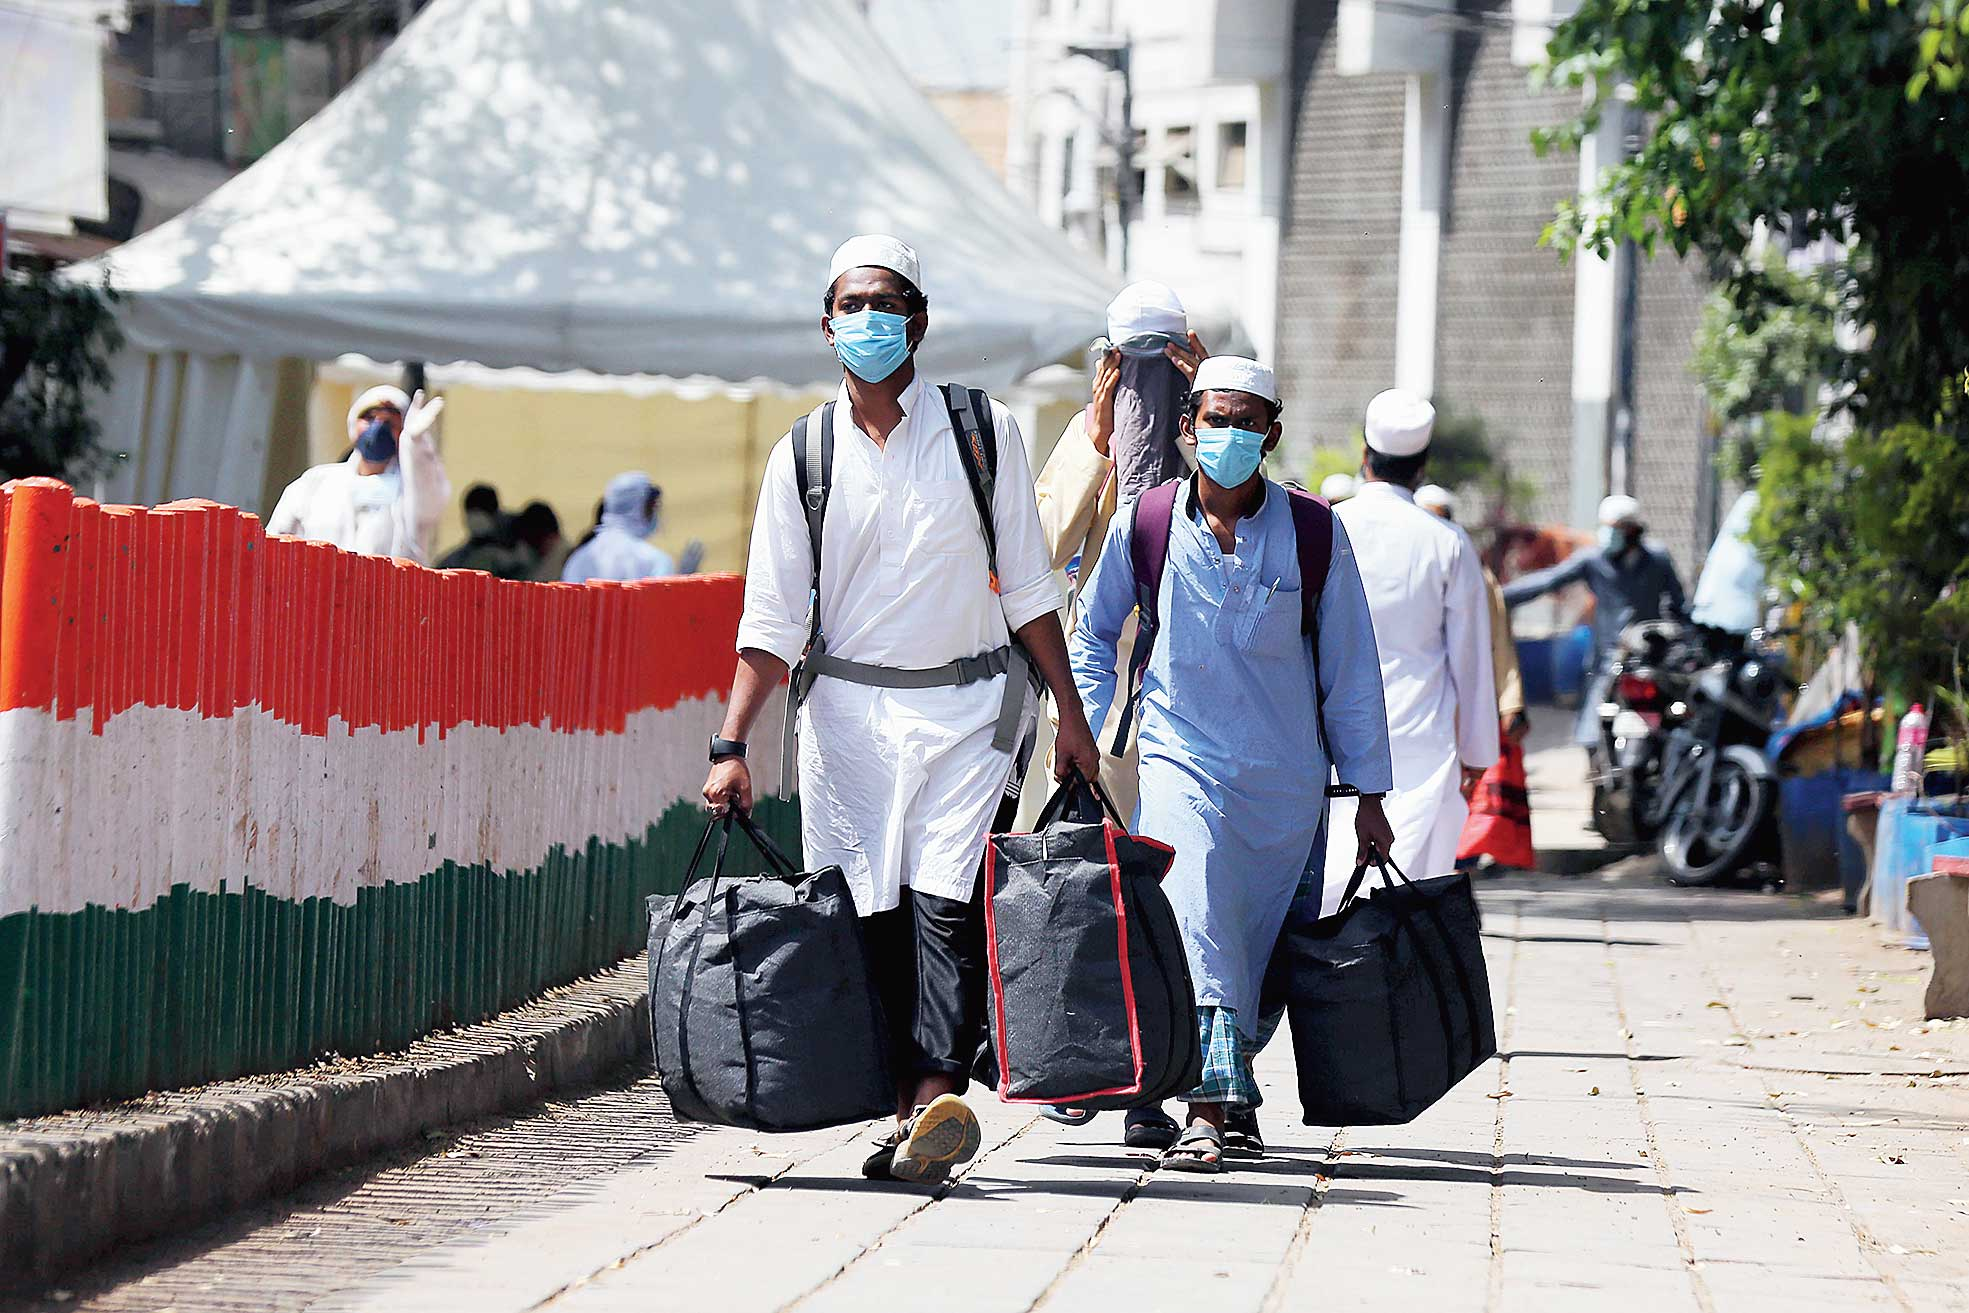 People who came for a religious gathering at Nizamuddin Mosque in New Delhi being taken to the LNJP hospital for Covid-19 test after several of them showed symptoms of the coronavirus on Tuesday.